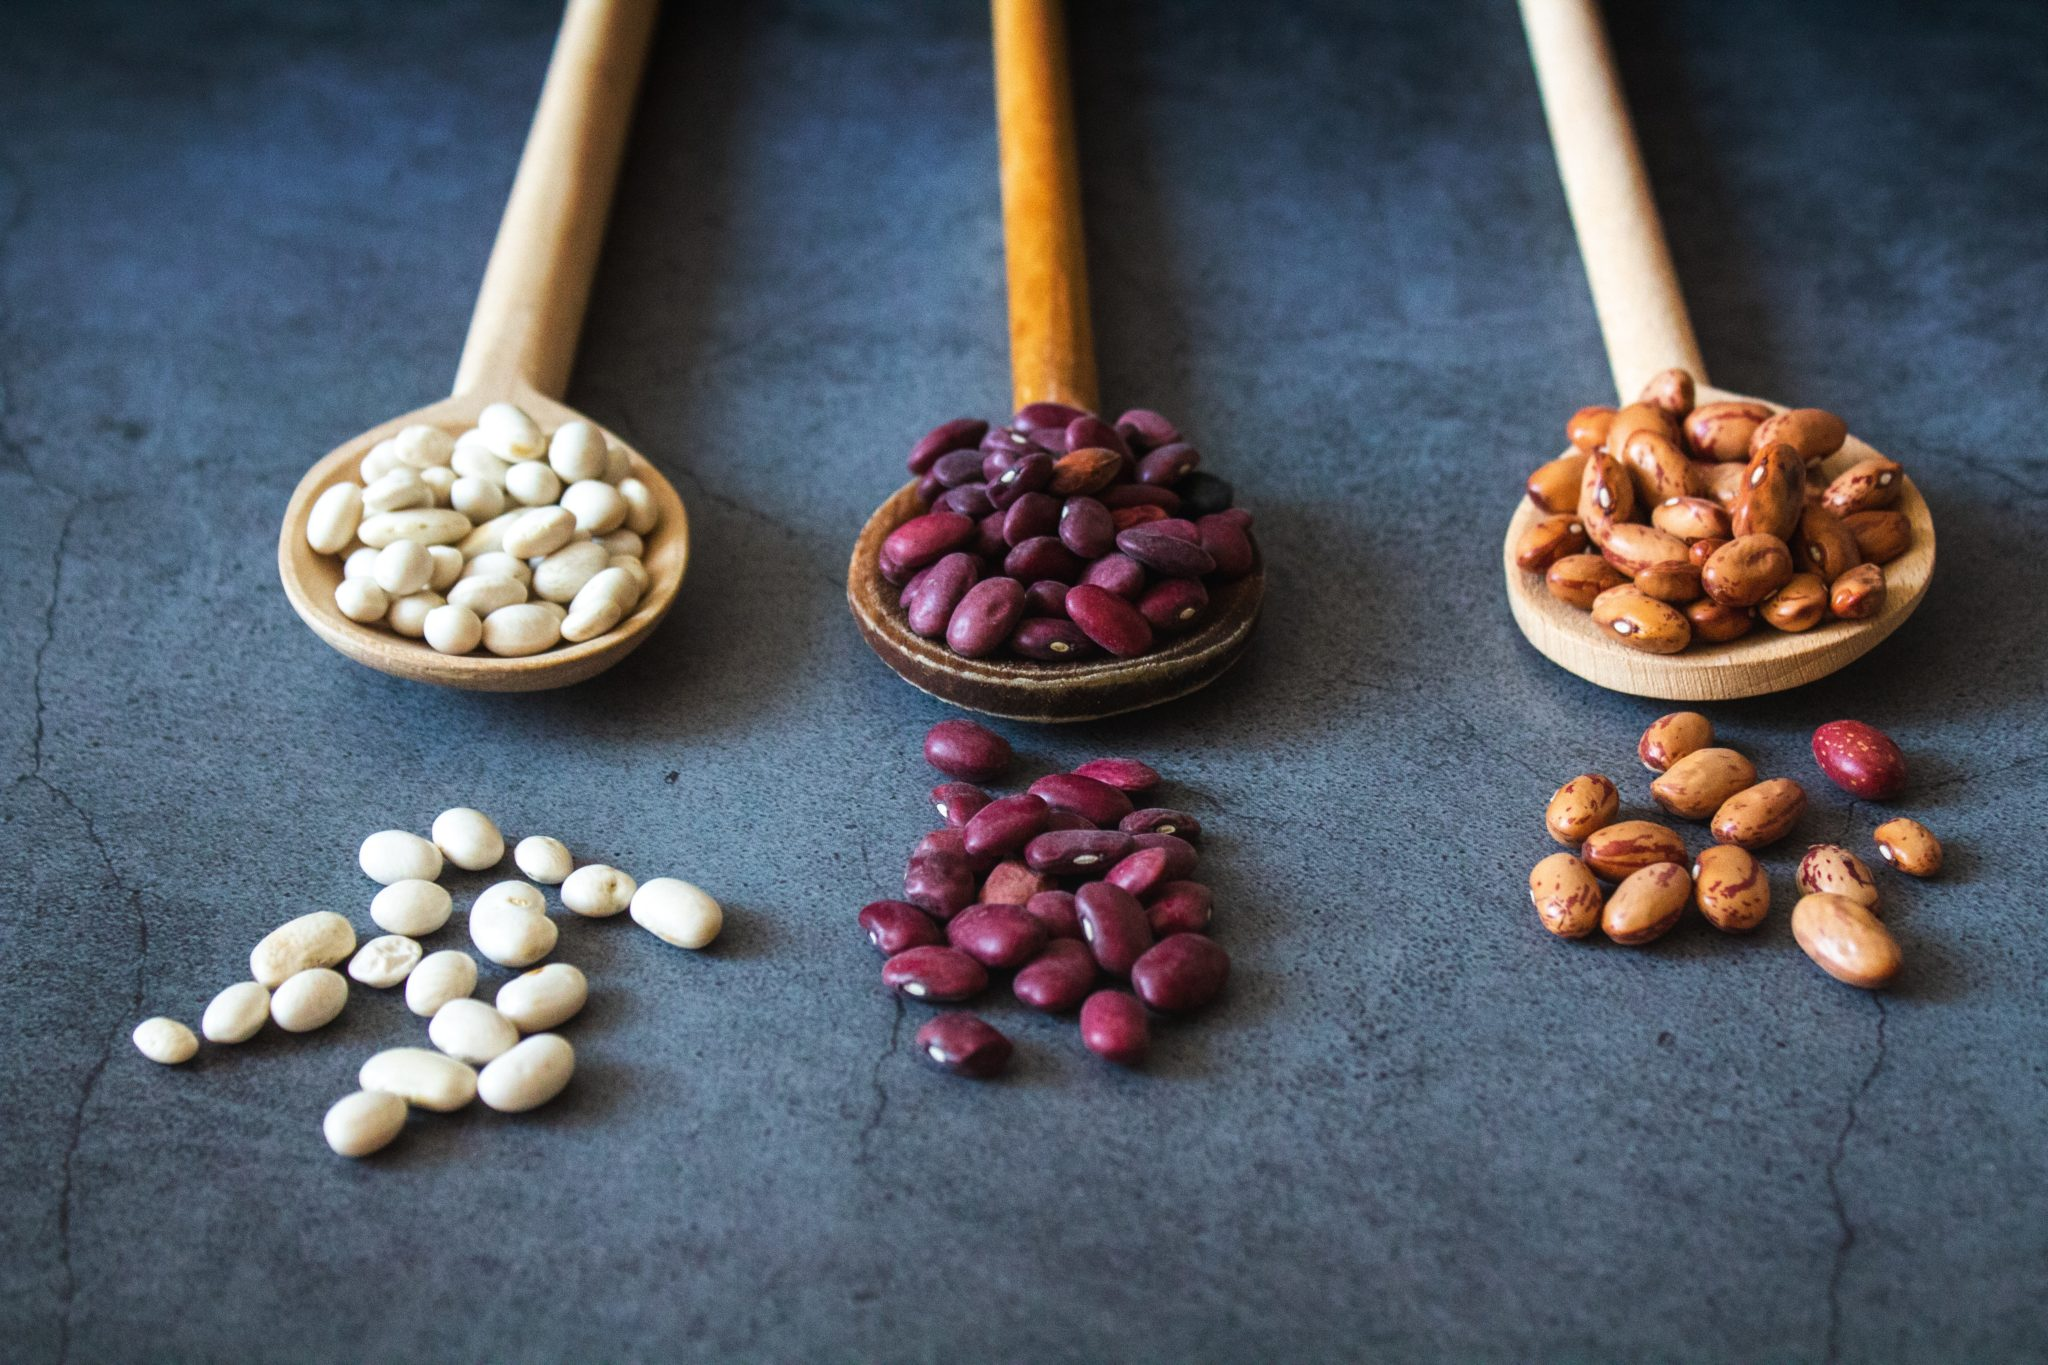 a variety of dry beans essential for the menstrual cycle diet